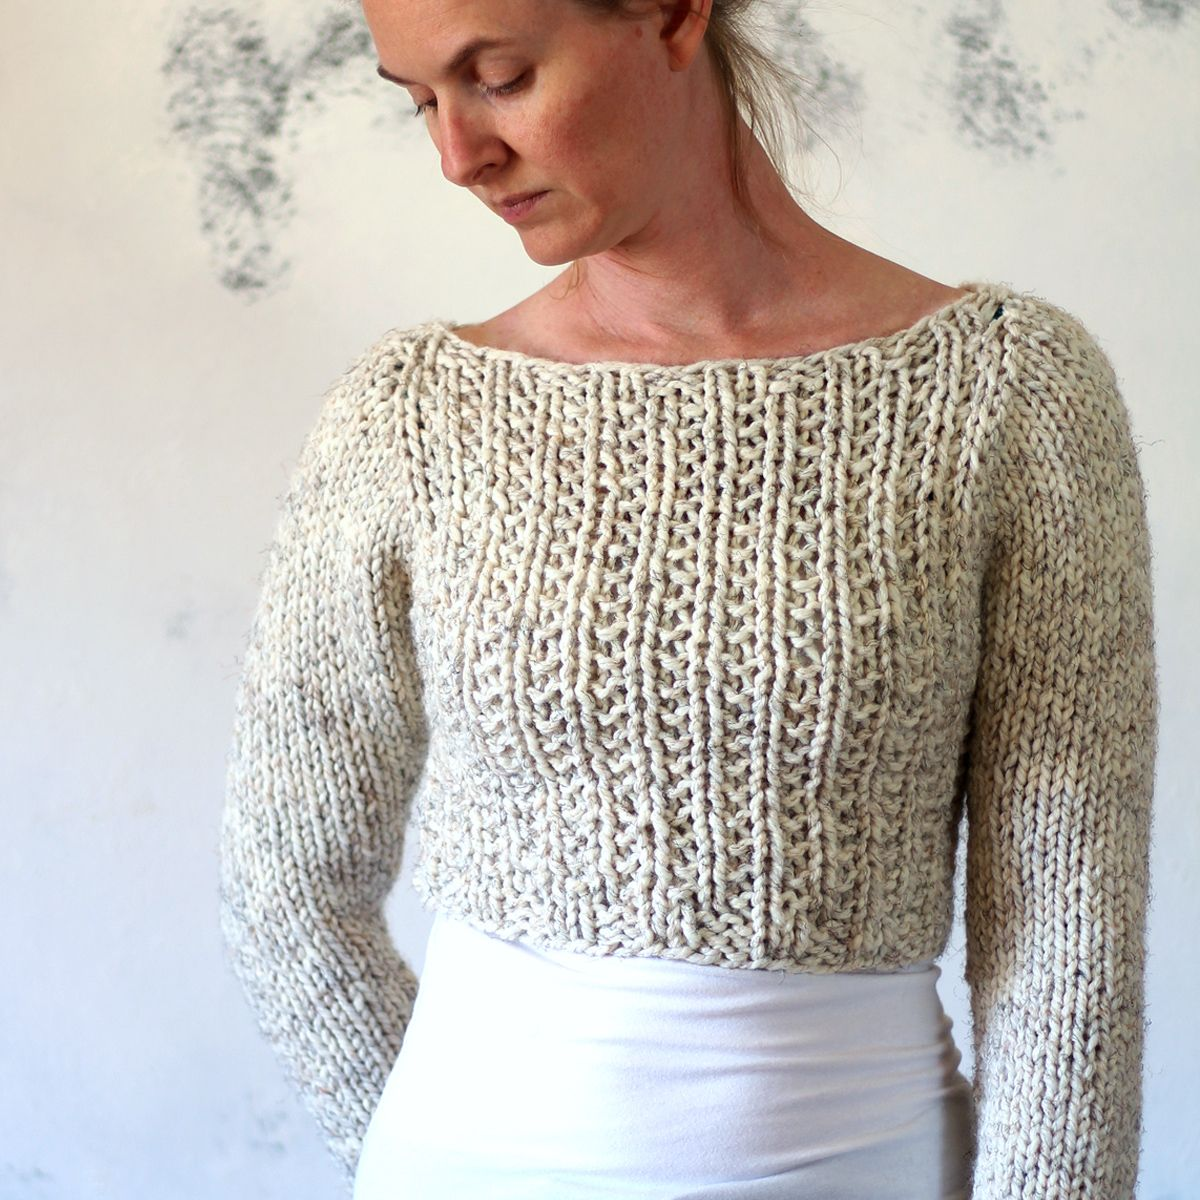 SILENCE - Sweater / Crop Tom Knitting Pattern | delicias con tus ...